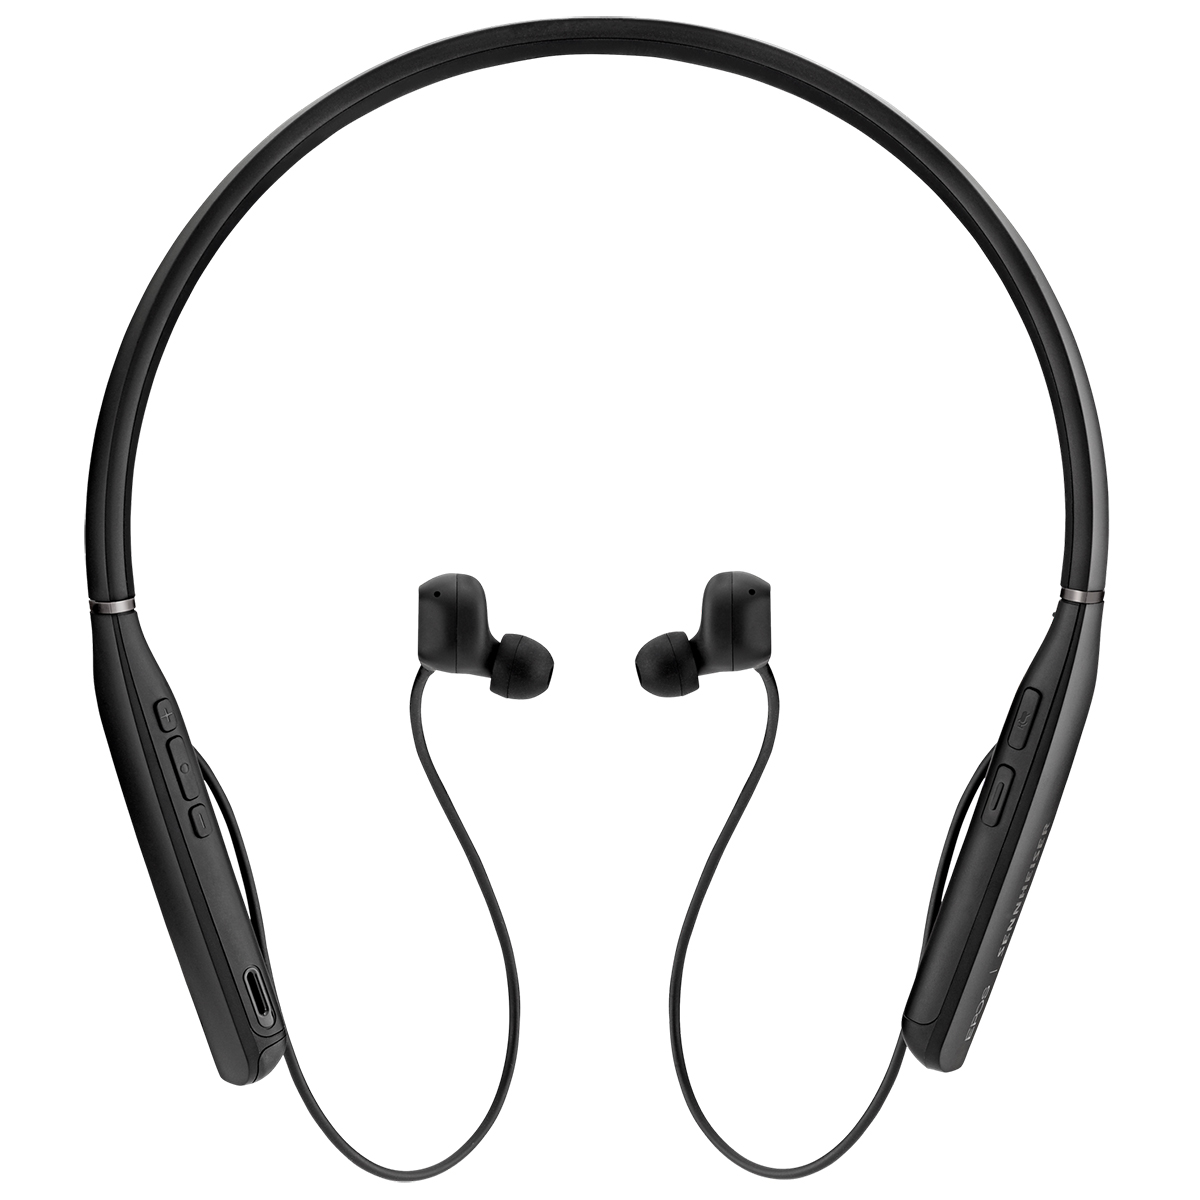 EPOS SENNHEISER Adapt 460 Stereo Bluetooth Headset